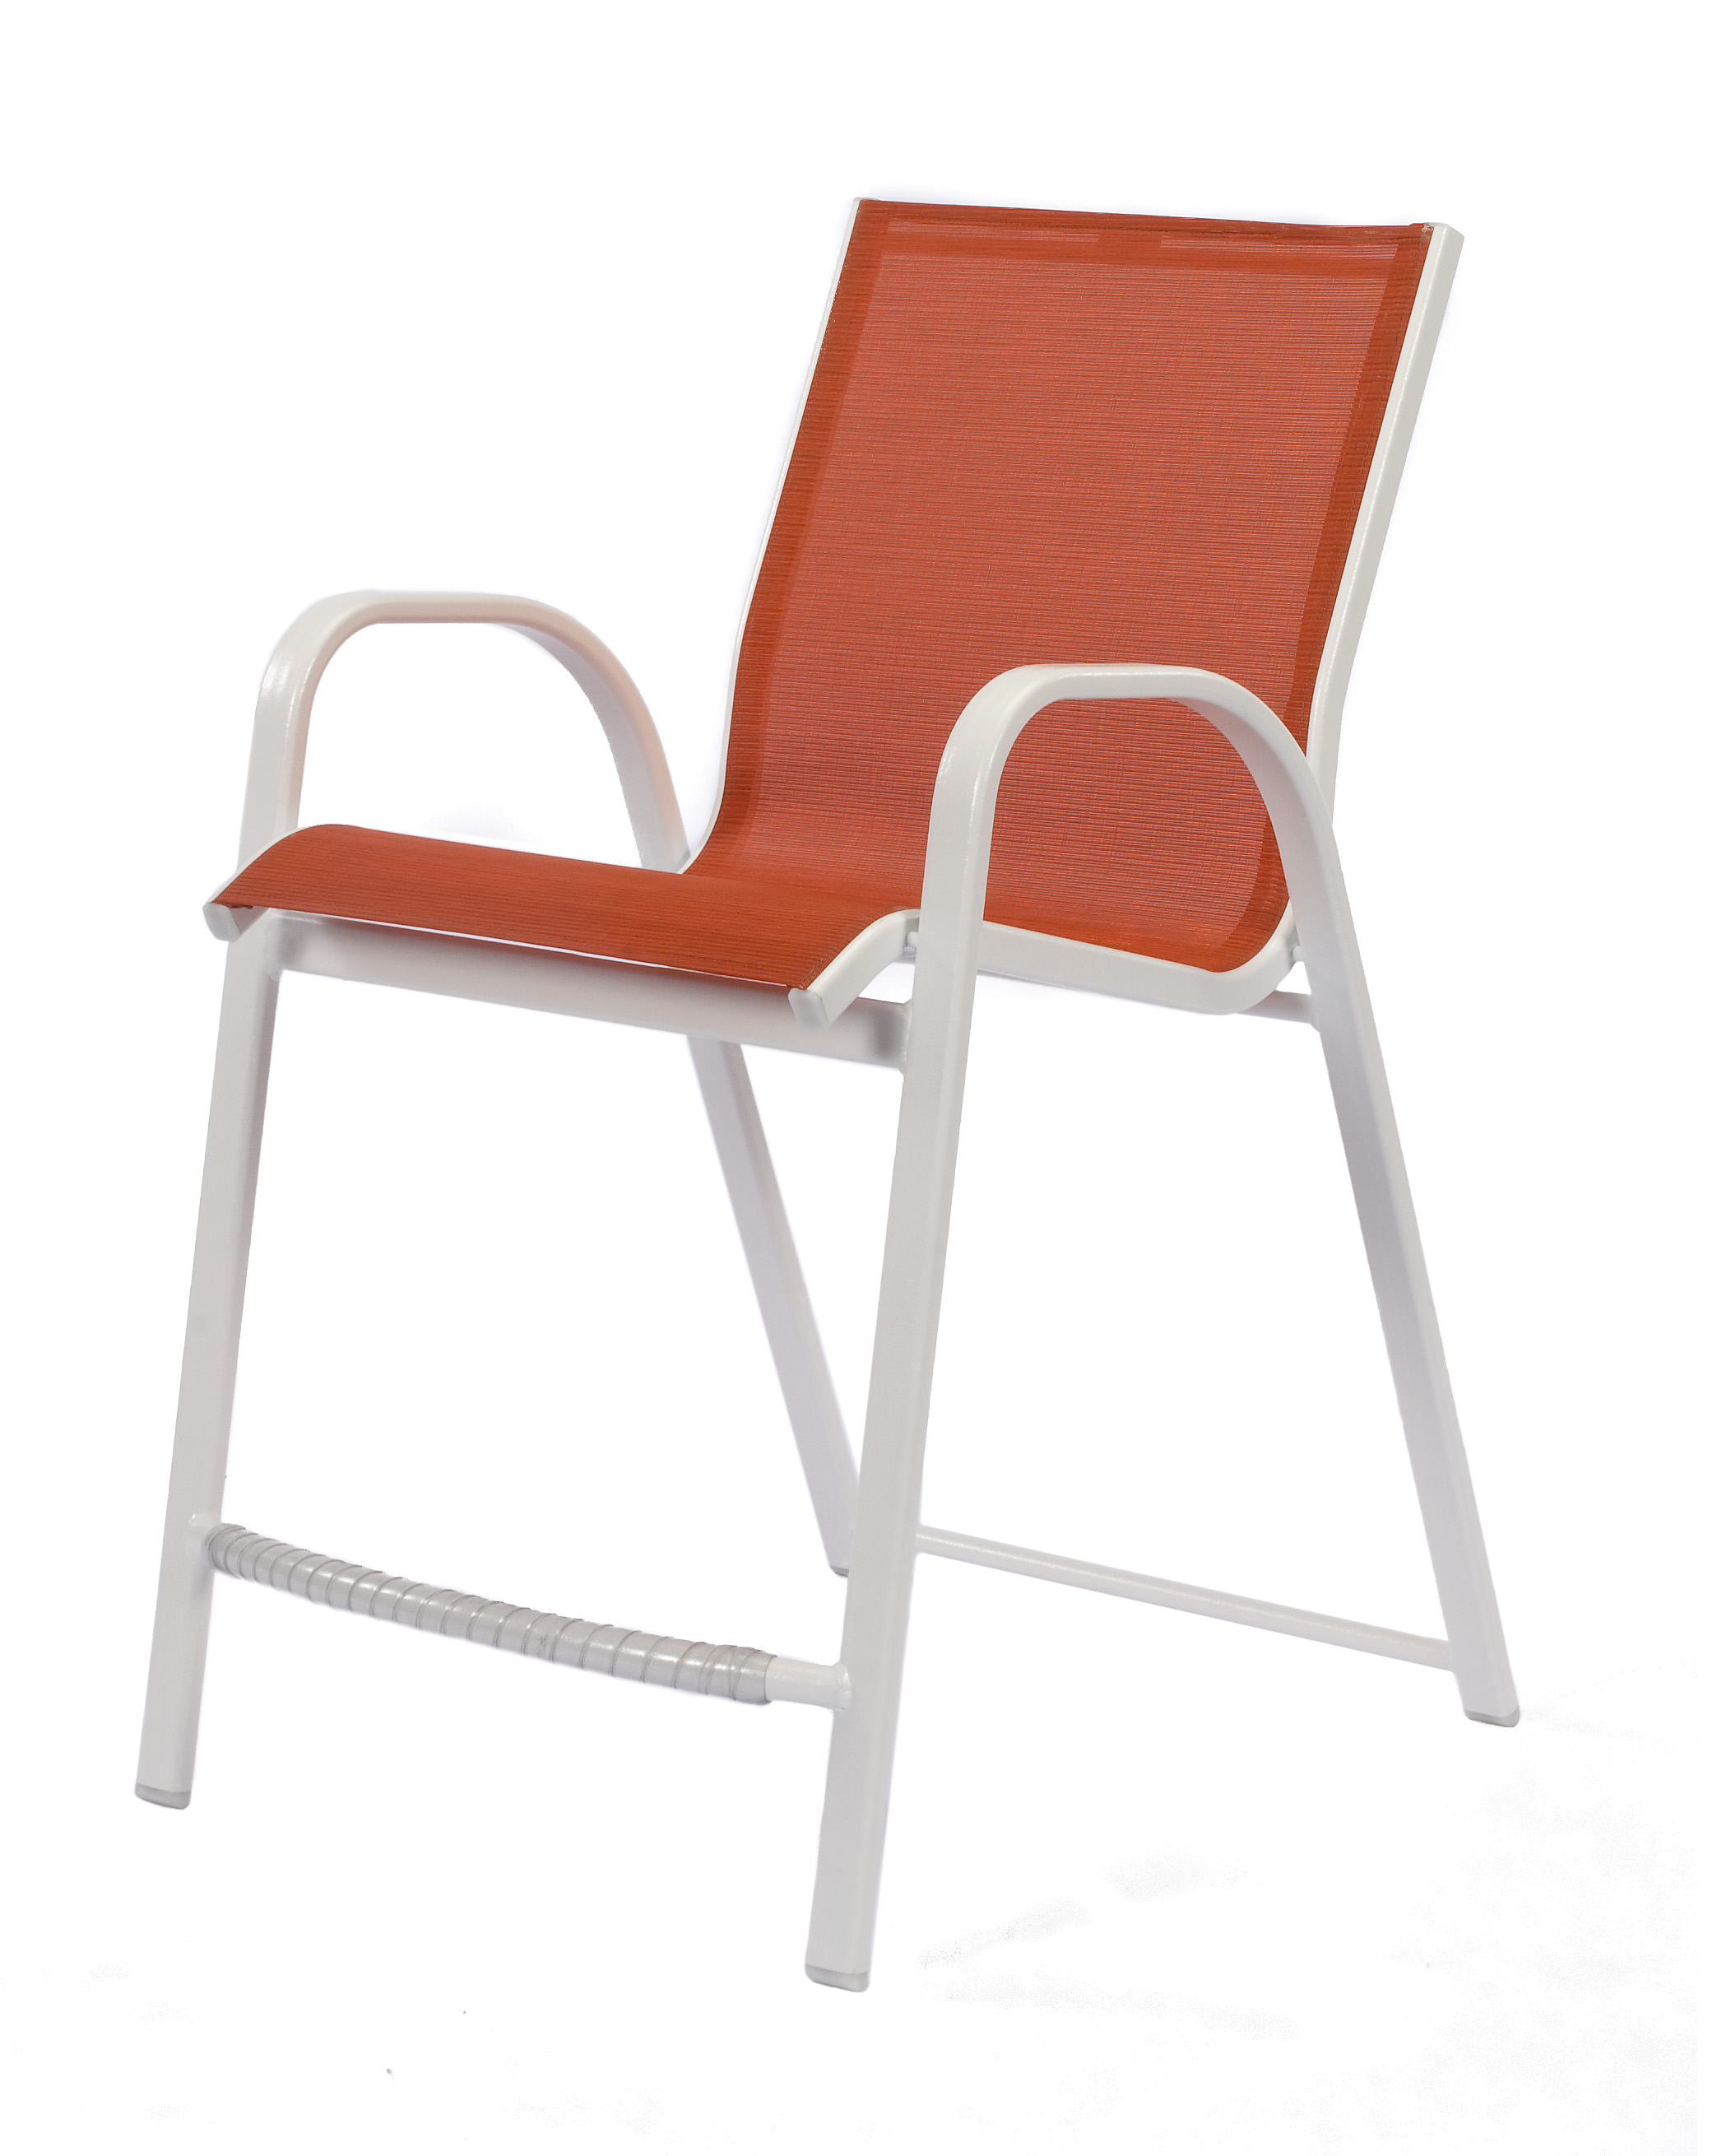 Windward Aluminum Seabreeze Sling Balcony Chair